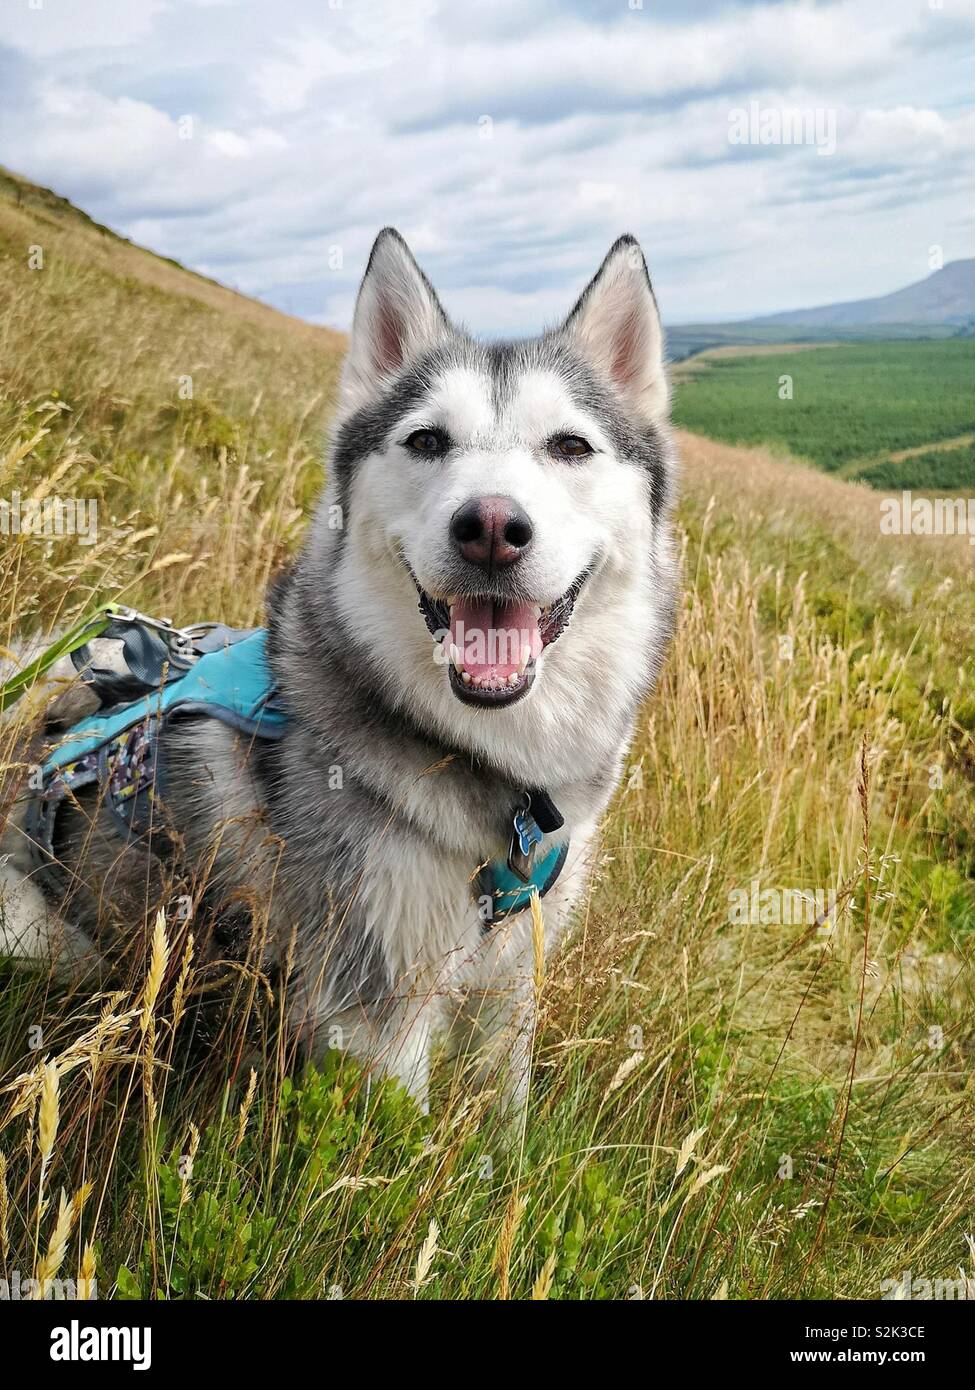 Husky dog in field in the hills of a Scotland Stock Photo